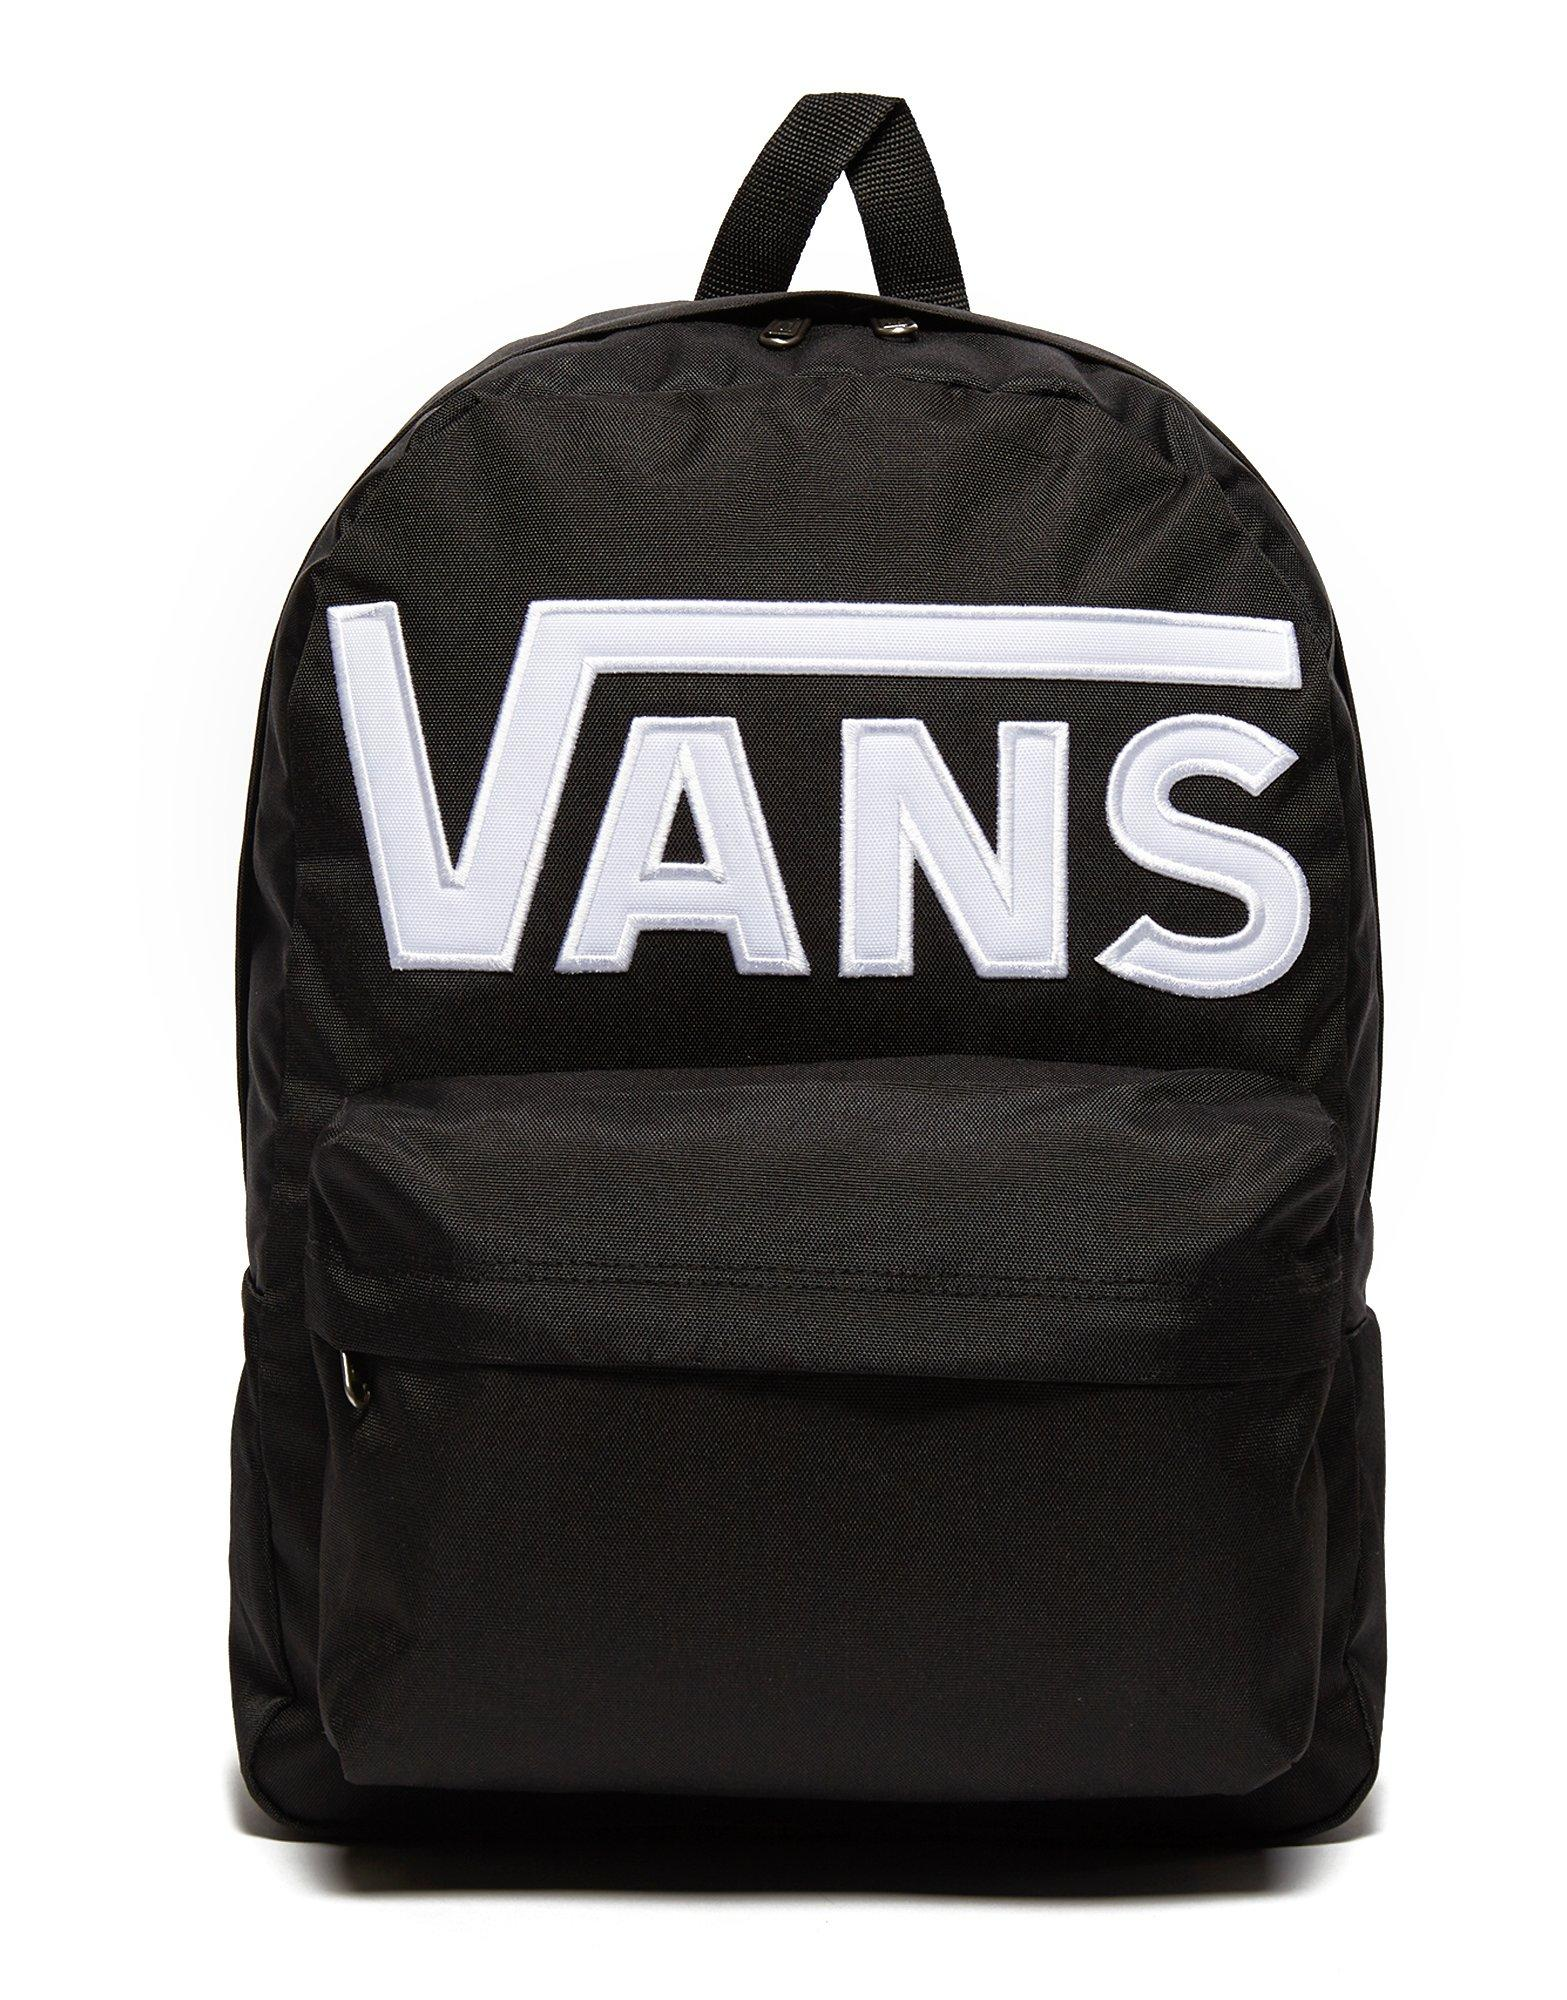 Get Fetish with vans bags